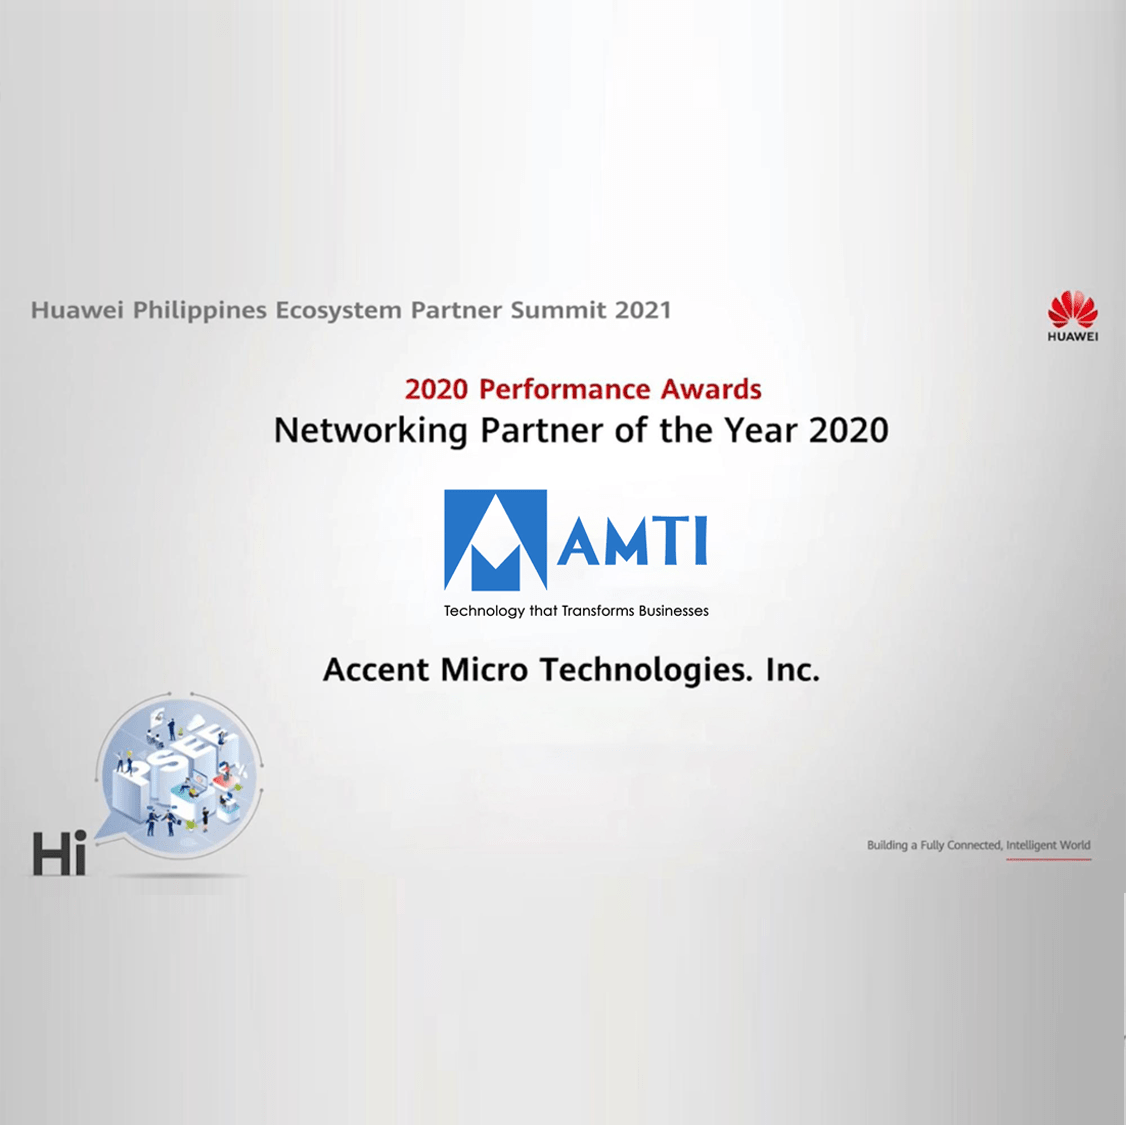 AMTI received two notable awards from Huawei